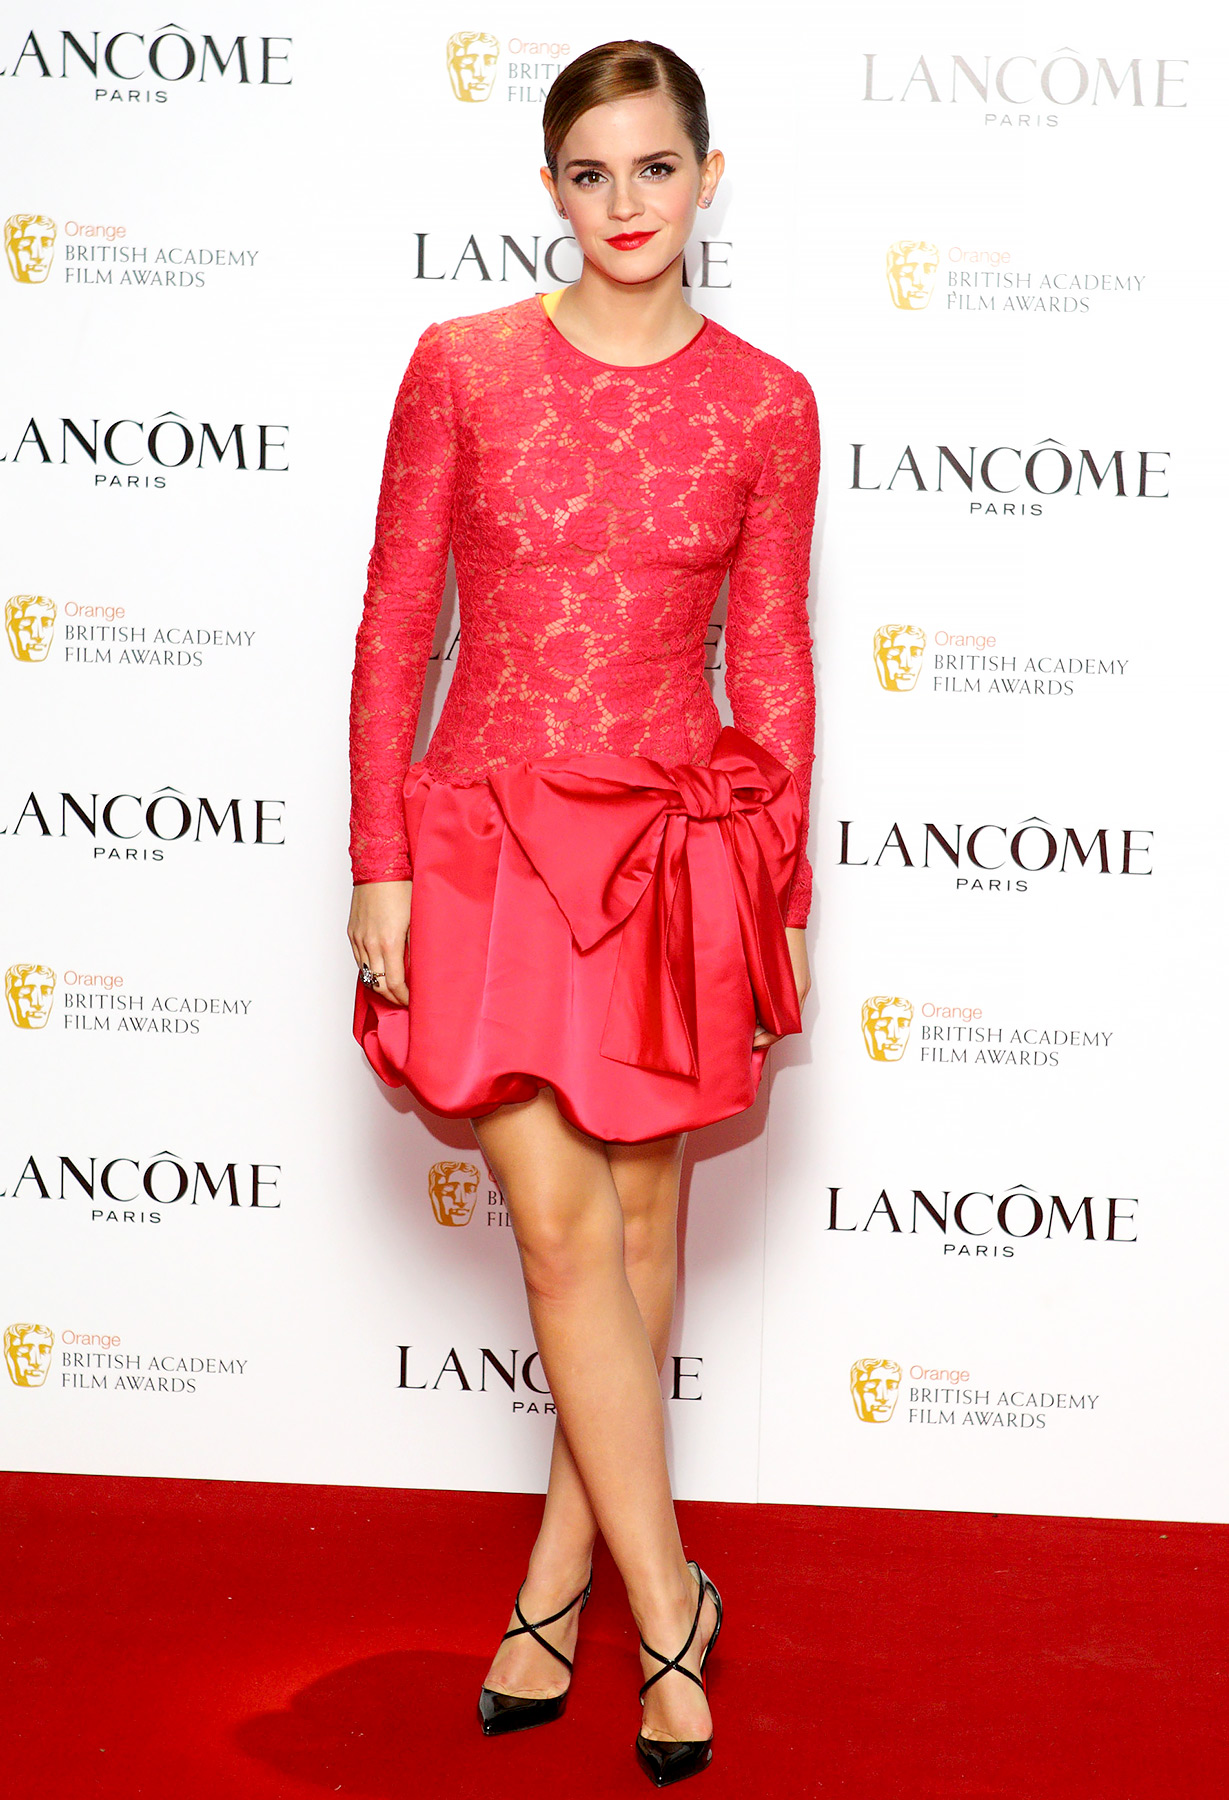 Exercising her style range, the British beauty went bold for a pre-BAFTA party hosted by Lancome in London. Post- Harry Potter , Watson showed her affinity for lace in a bright red Valentino dress, which featured a bubbled bow bottom.